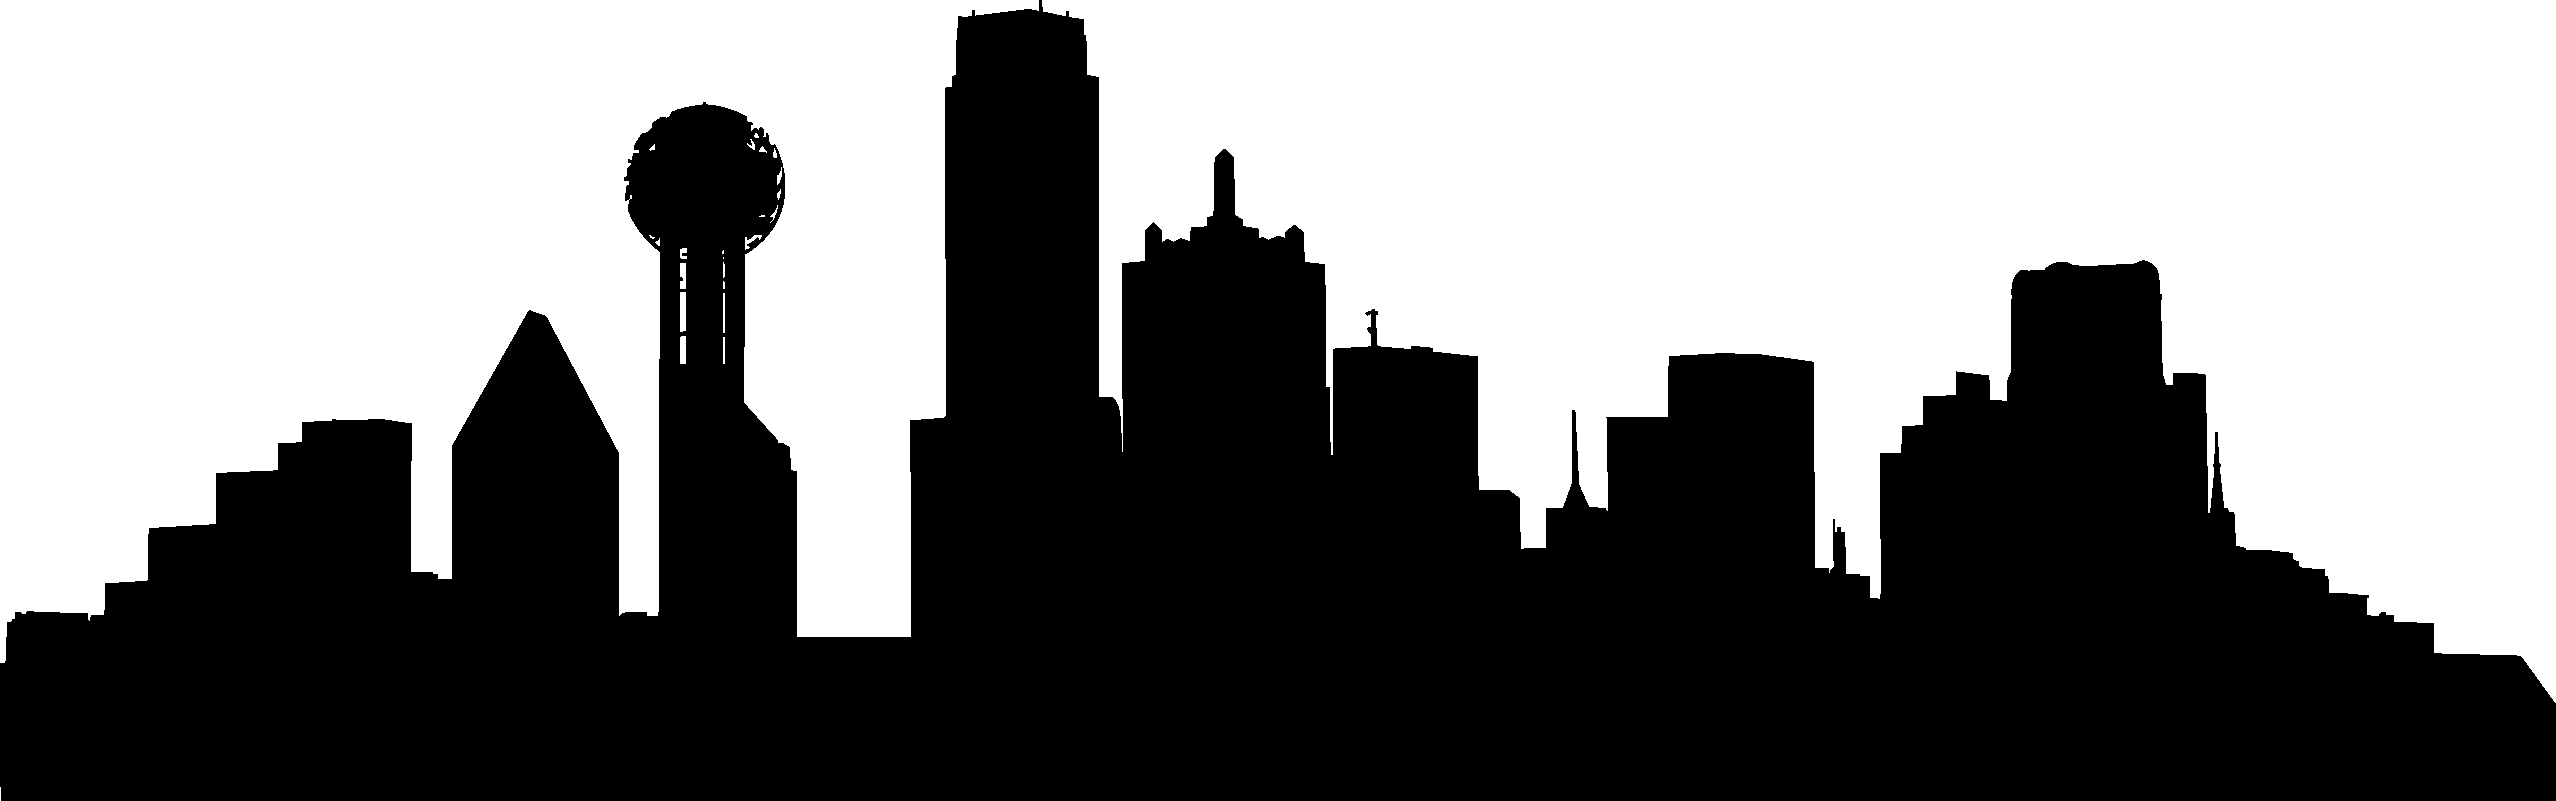 2556x801 City Skyline Silhouette 02 Vector Eps Free Download, Logo, Icons